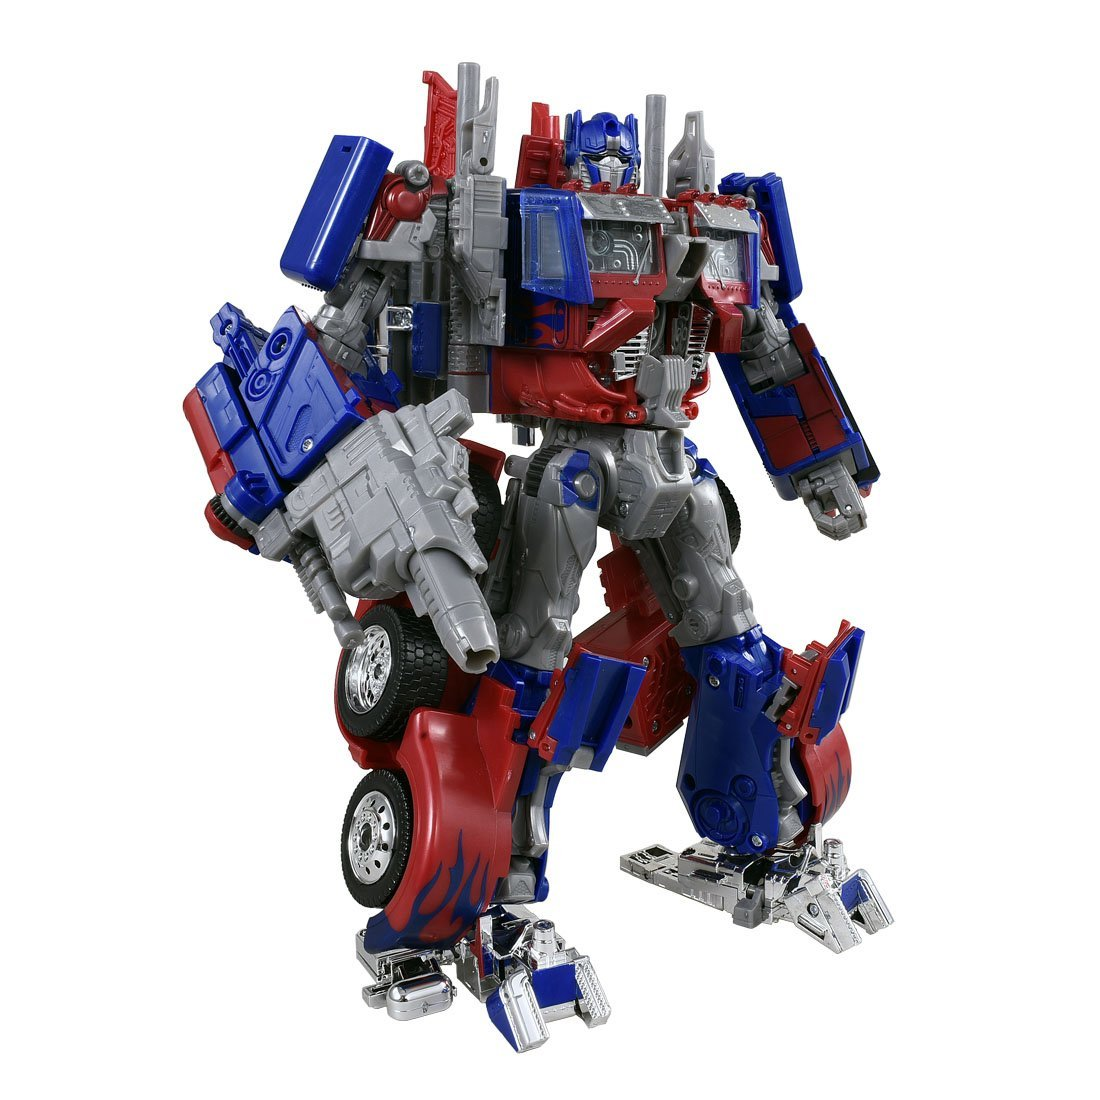 takara tomy tlk ex optimus prime 2007 exclusive transformers news tfw2005. Black Bedroom Furniture Sets. Home Design Ideas